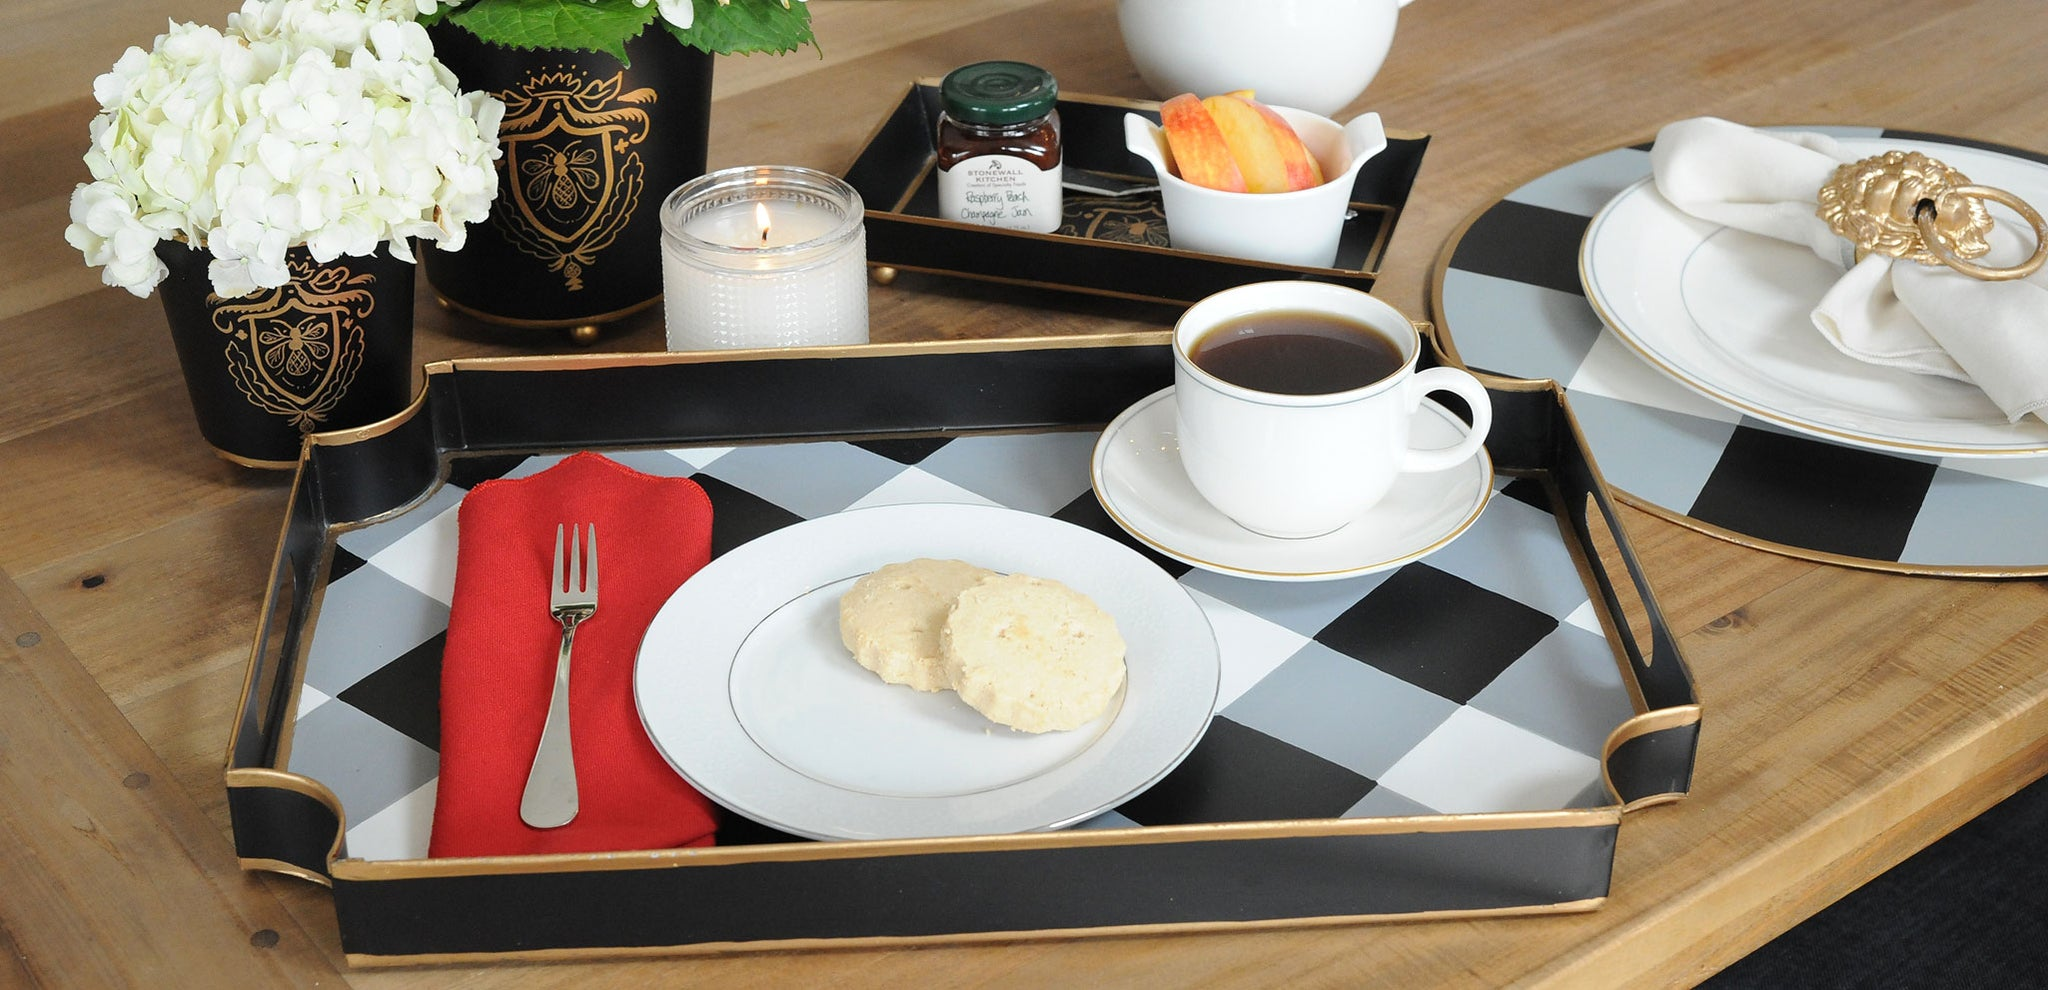 Jaye's Studio trays, chargers, placemats, and other tabletop items.